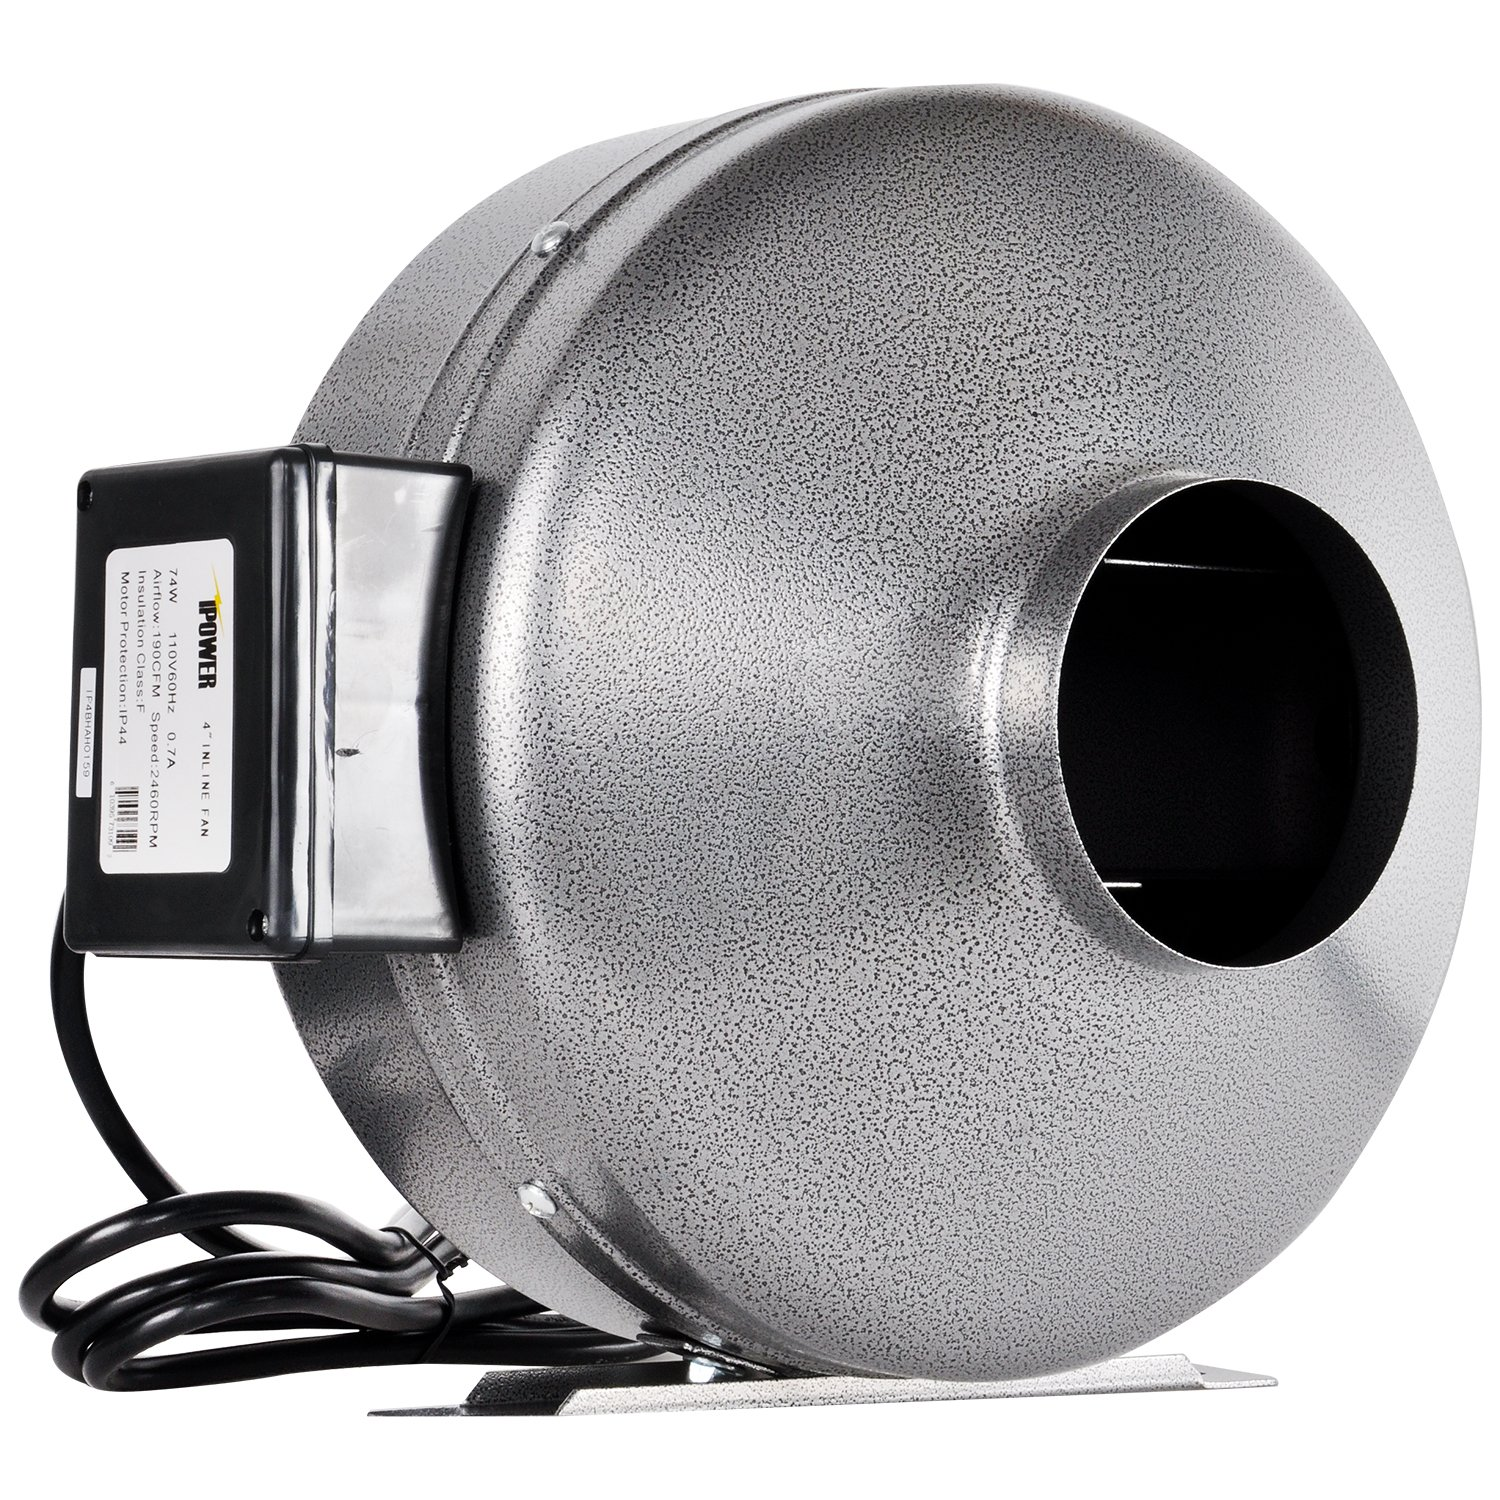 Big Vent Fans : Best inline fans for cannabis grow room reviews